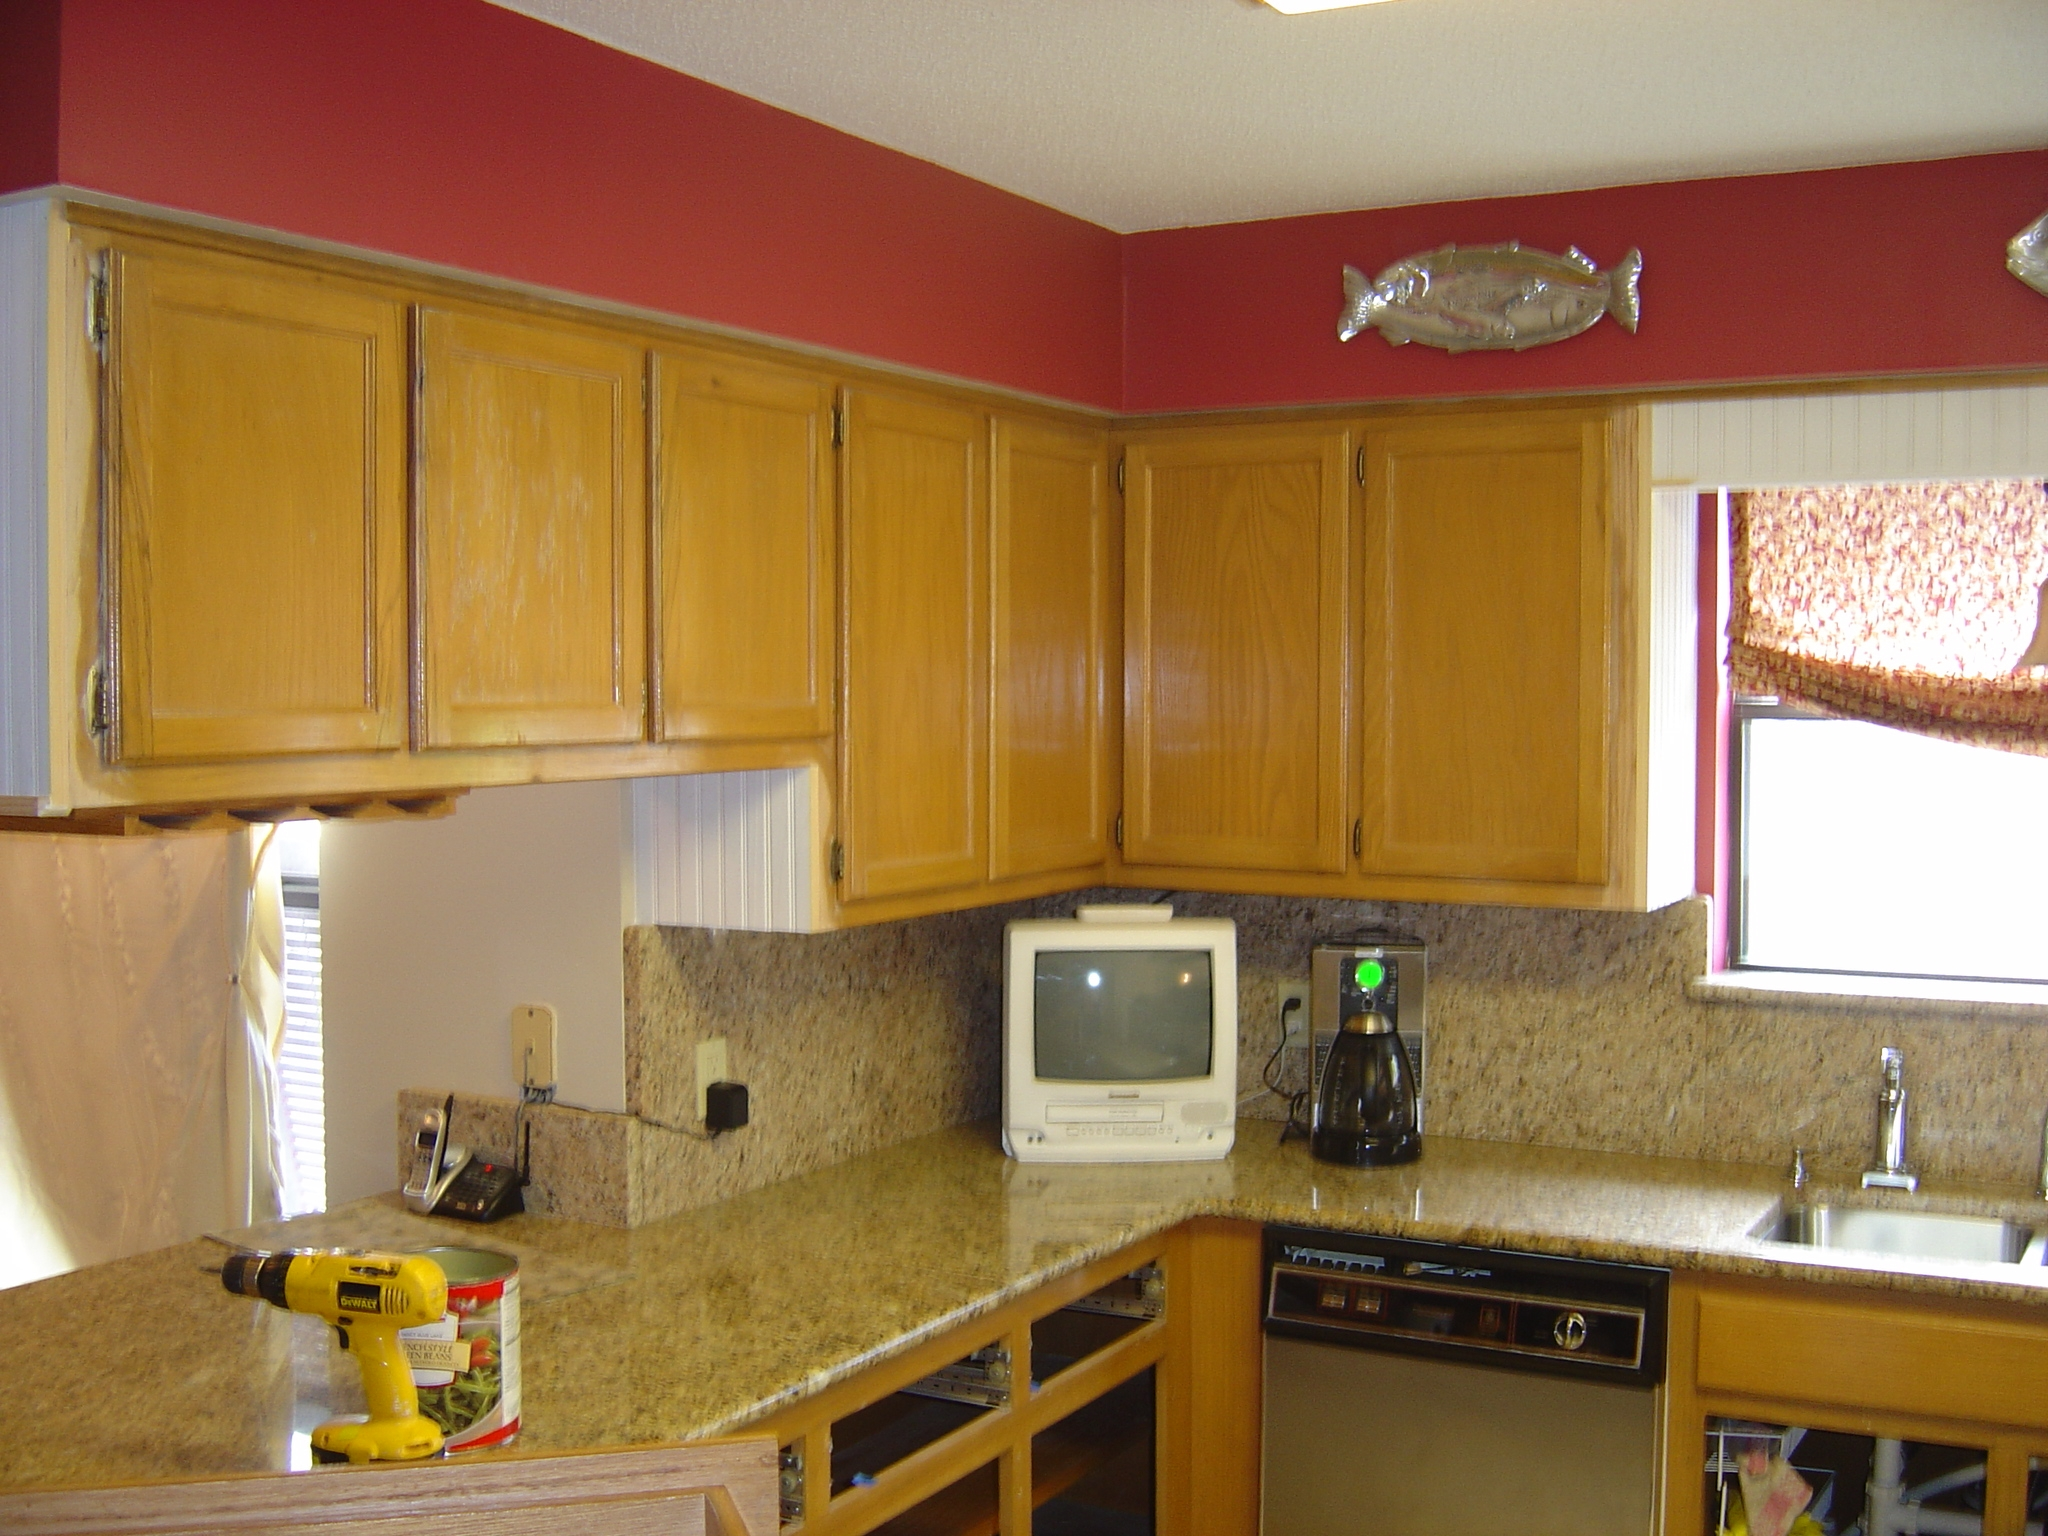 Staining Oak Cabinets Espresso Luxury Restaining Oak Kitchen Cabinets A General Finishes Gel